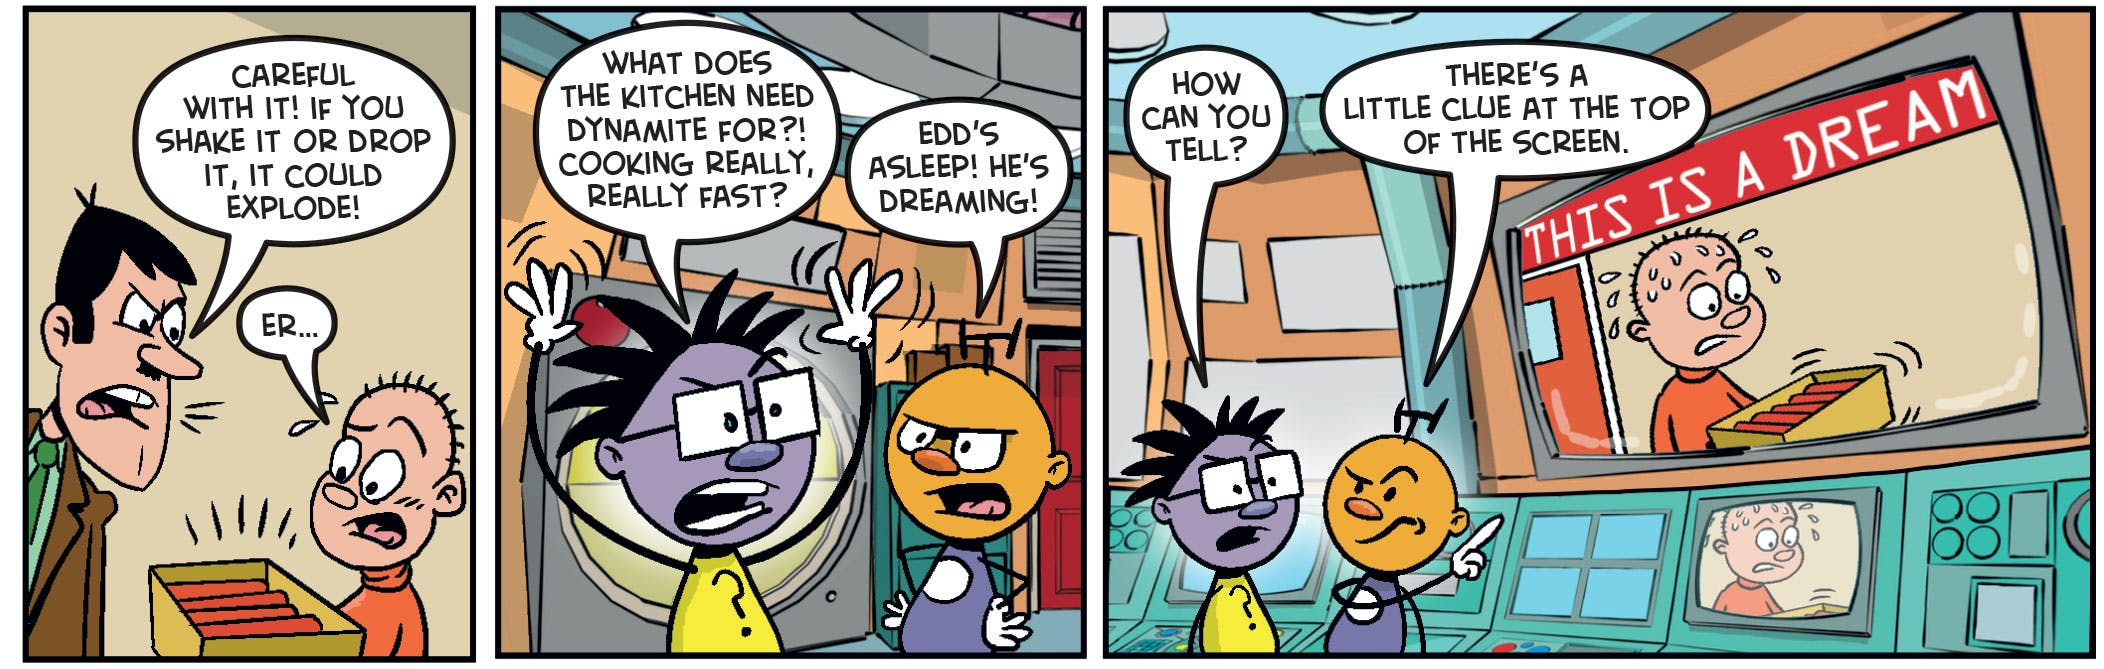 5.	…and Edd's strange dream is making Brainy very confused!